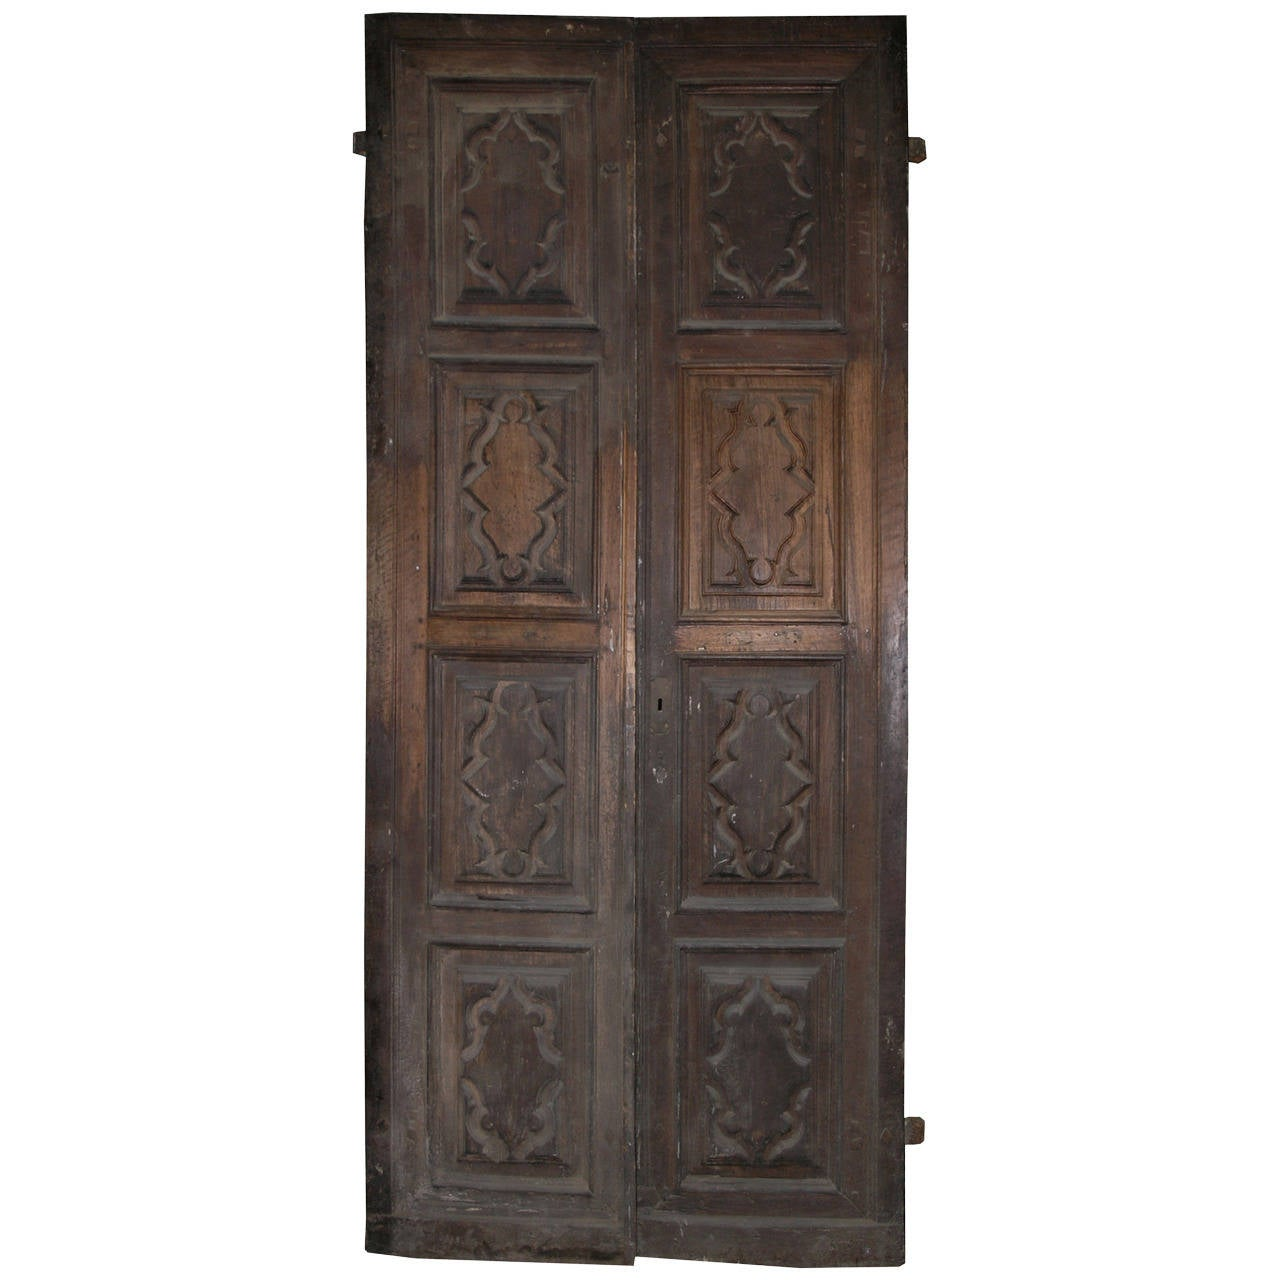 Antique carved double door made of walnut for sale at 1stdibs for Double doors for sale